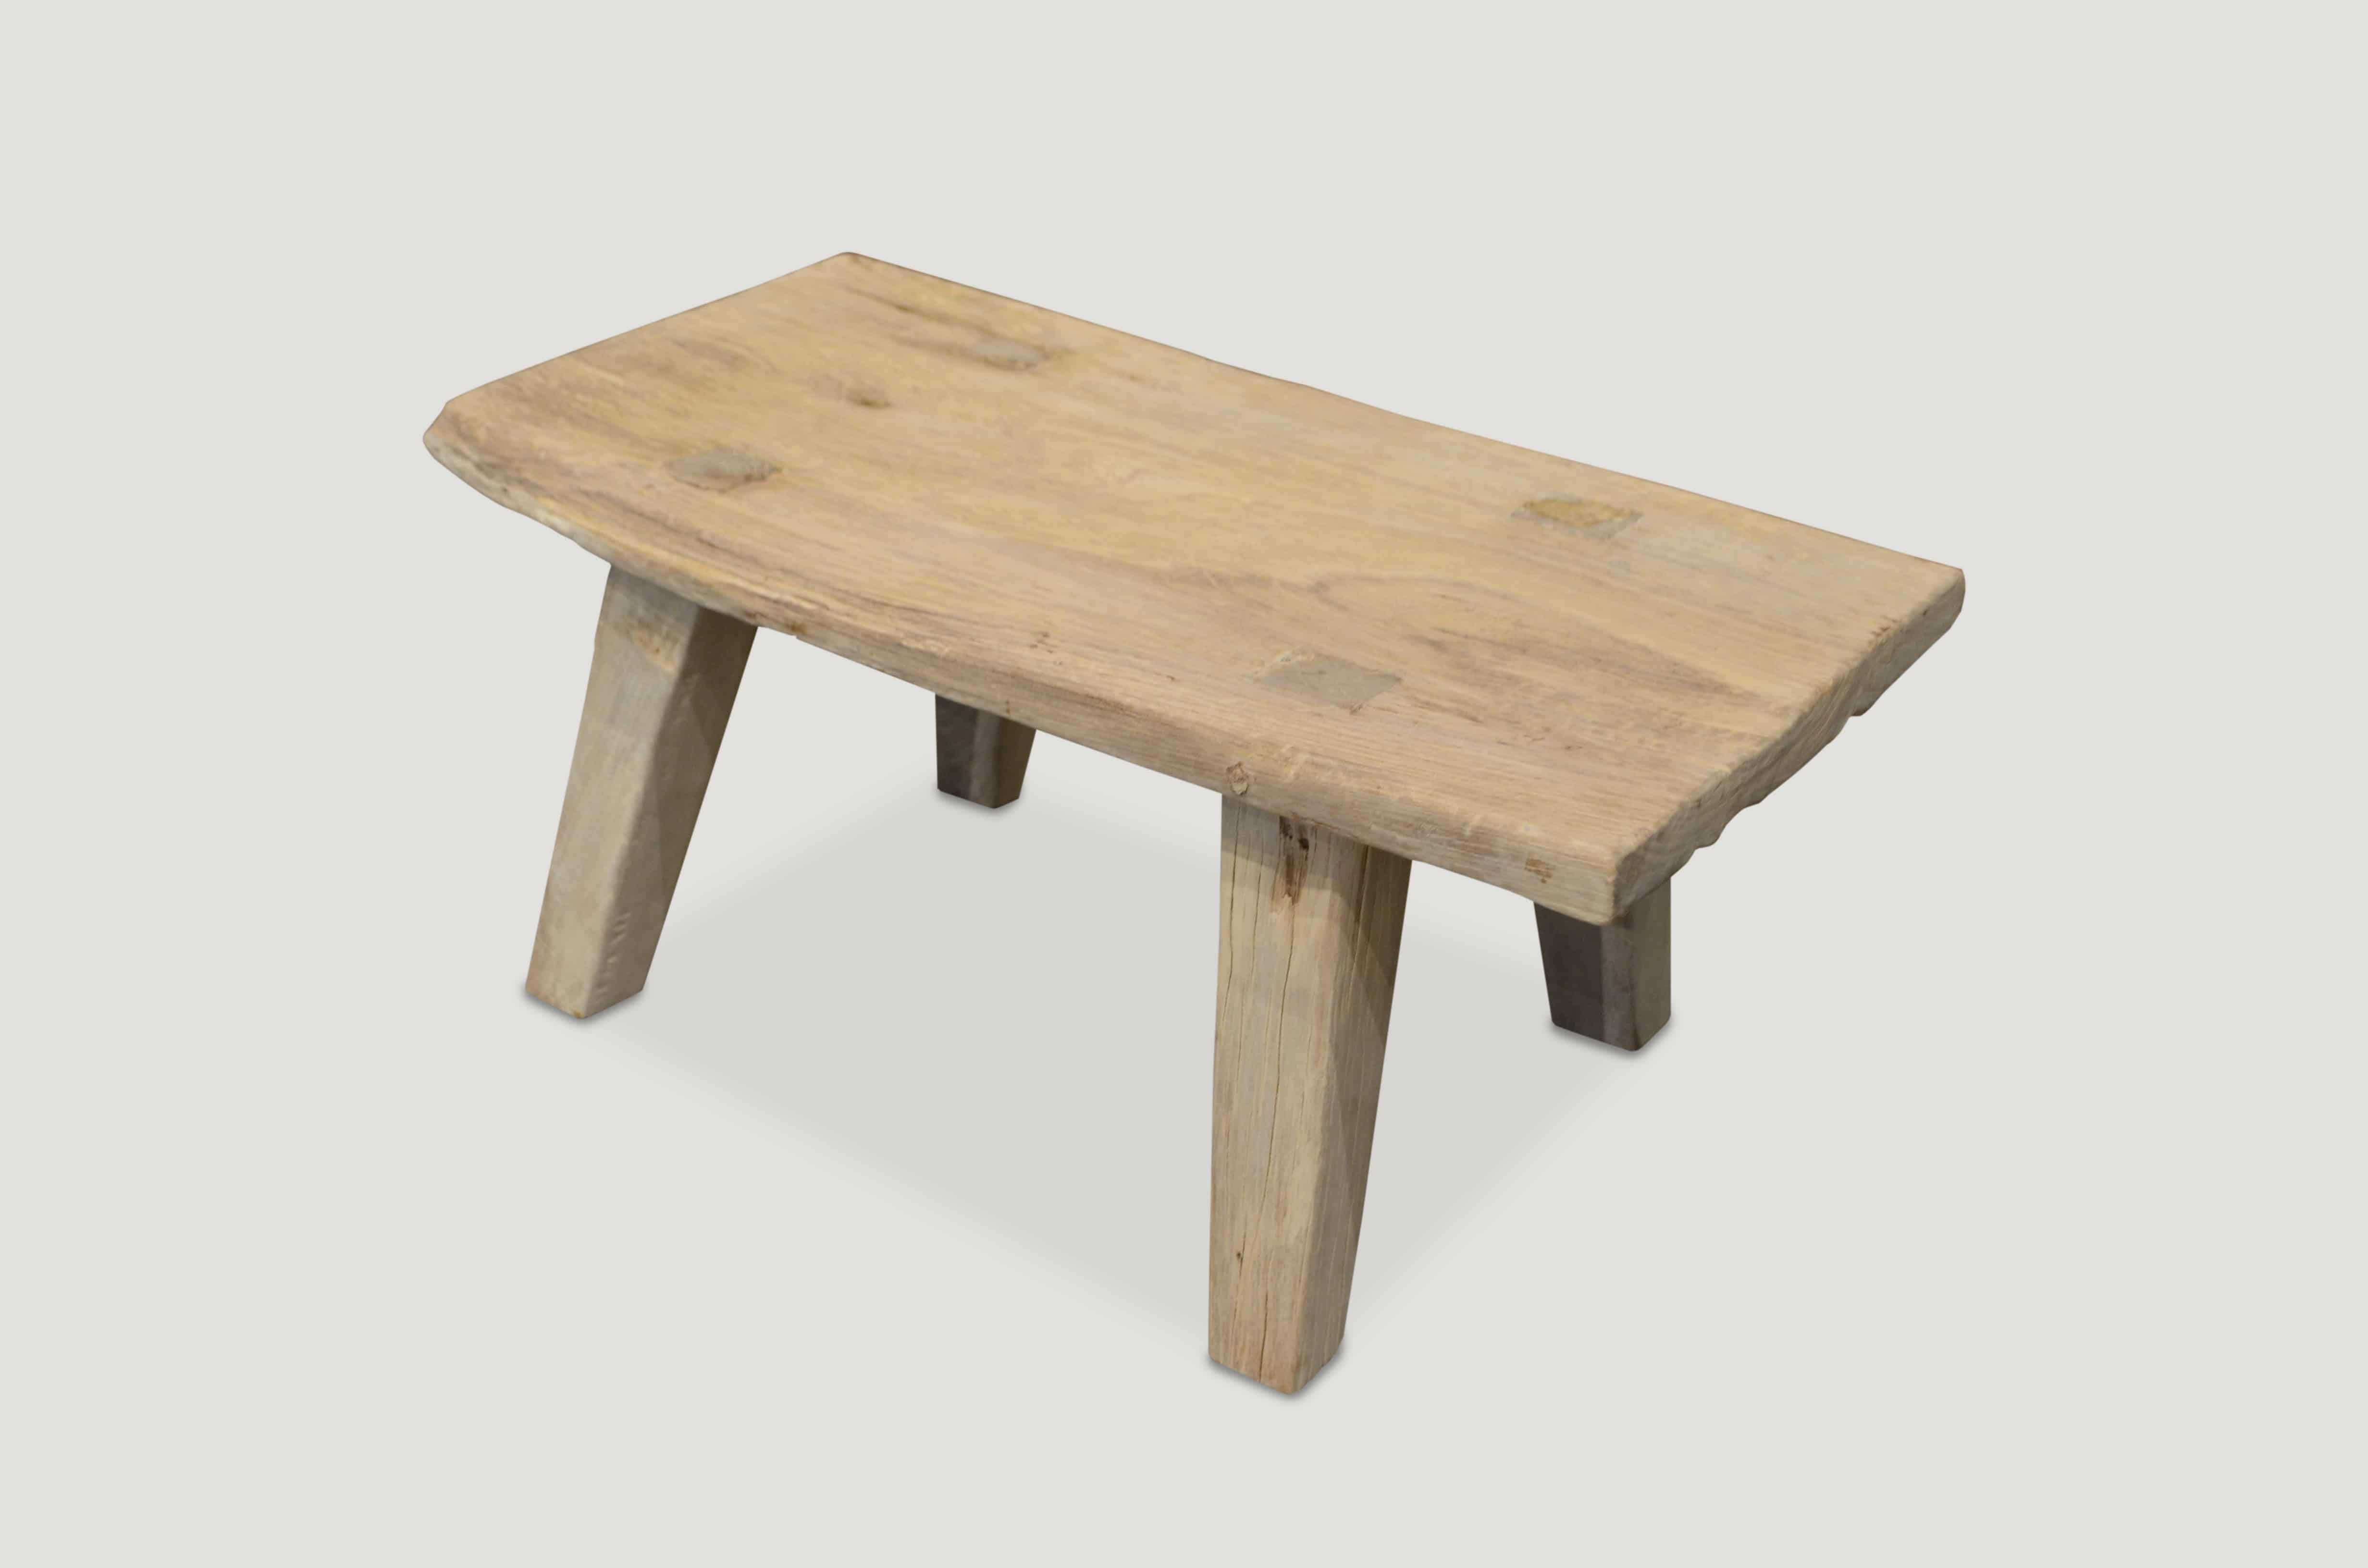 Bleached Teak Wood Side Table Coffee Table Or Bench 108le